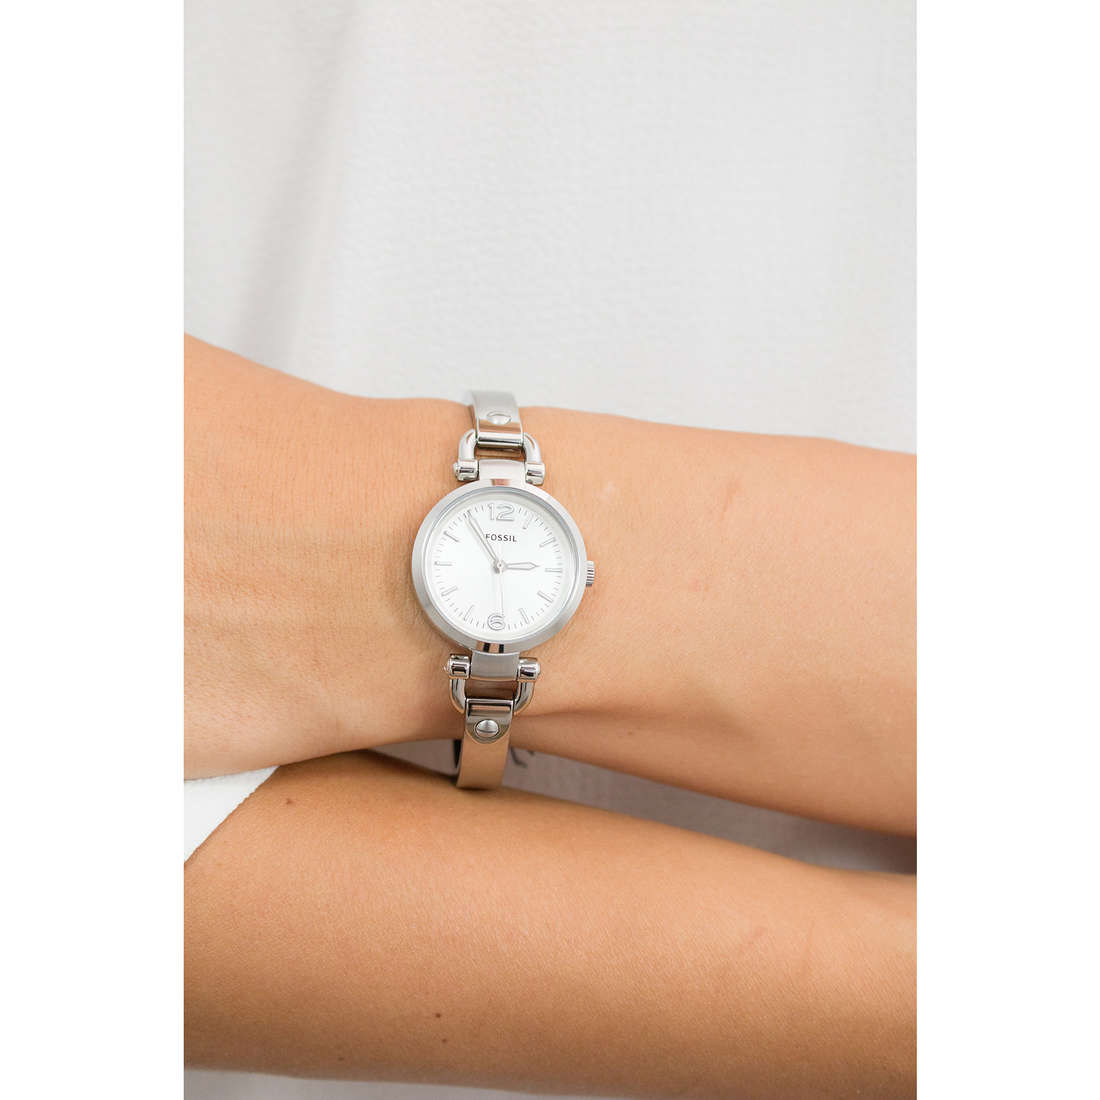 Fossil seul le temps femme ES3269 photo wearing